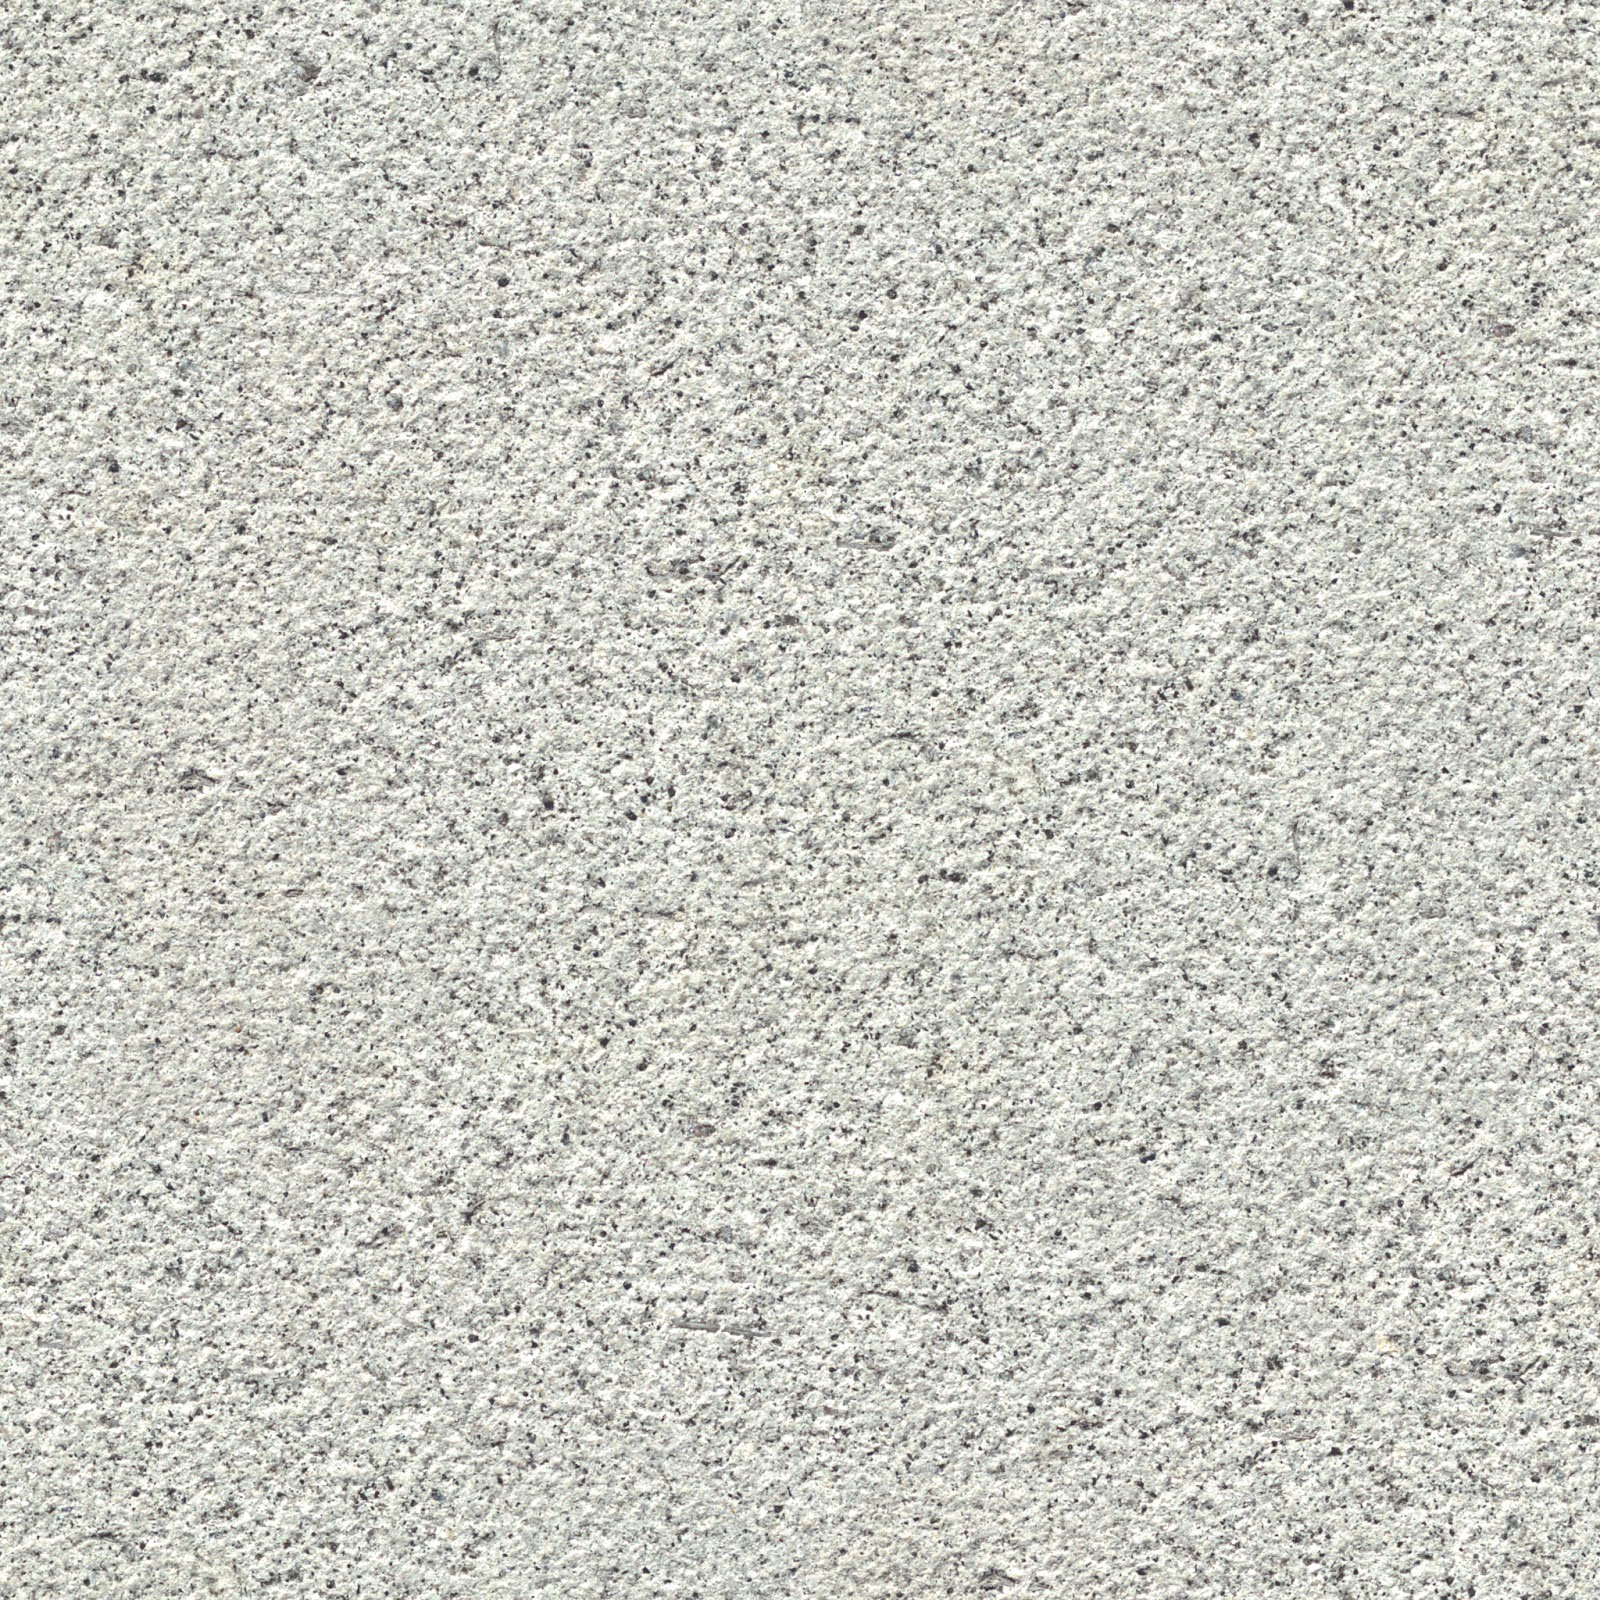 High Resolution Textures Stone White Texture 4770x3178